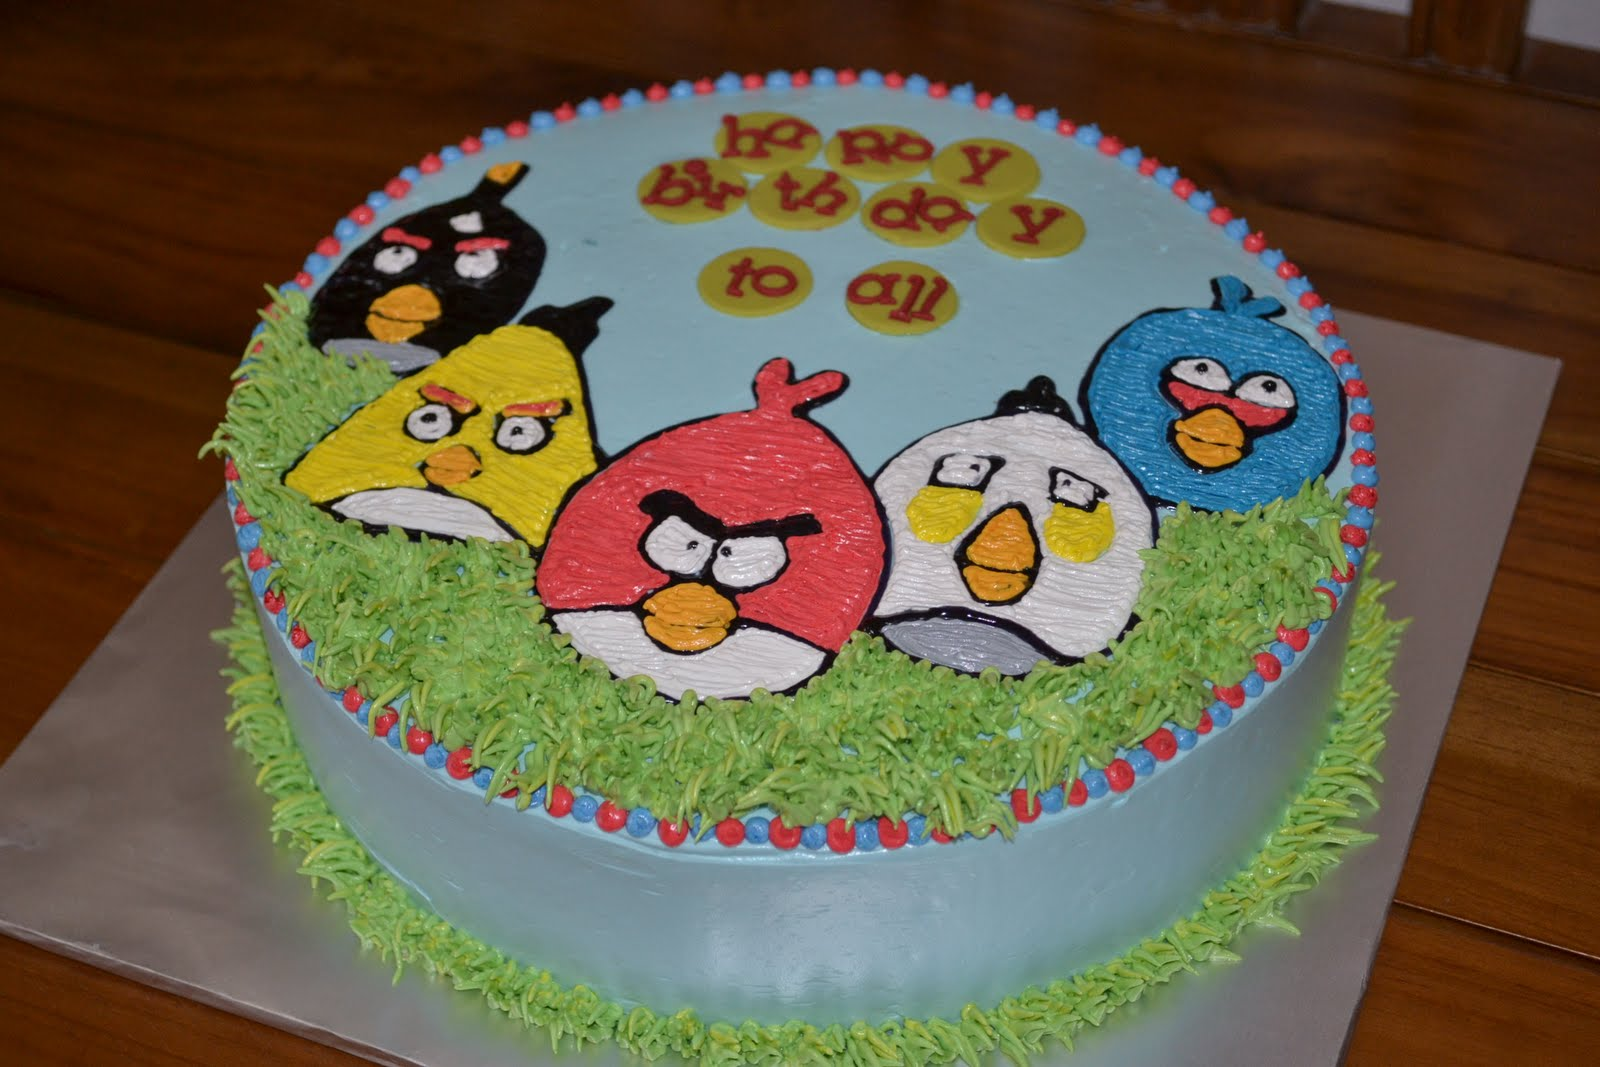 angry bird birthday cake images - Birthday Cake Designs Ideas